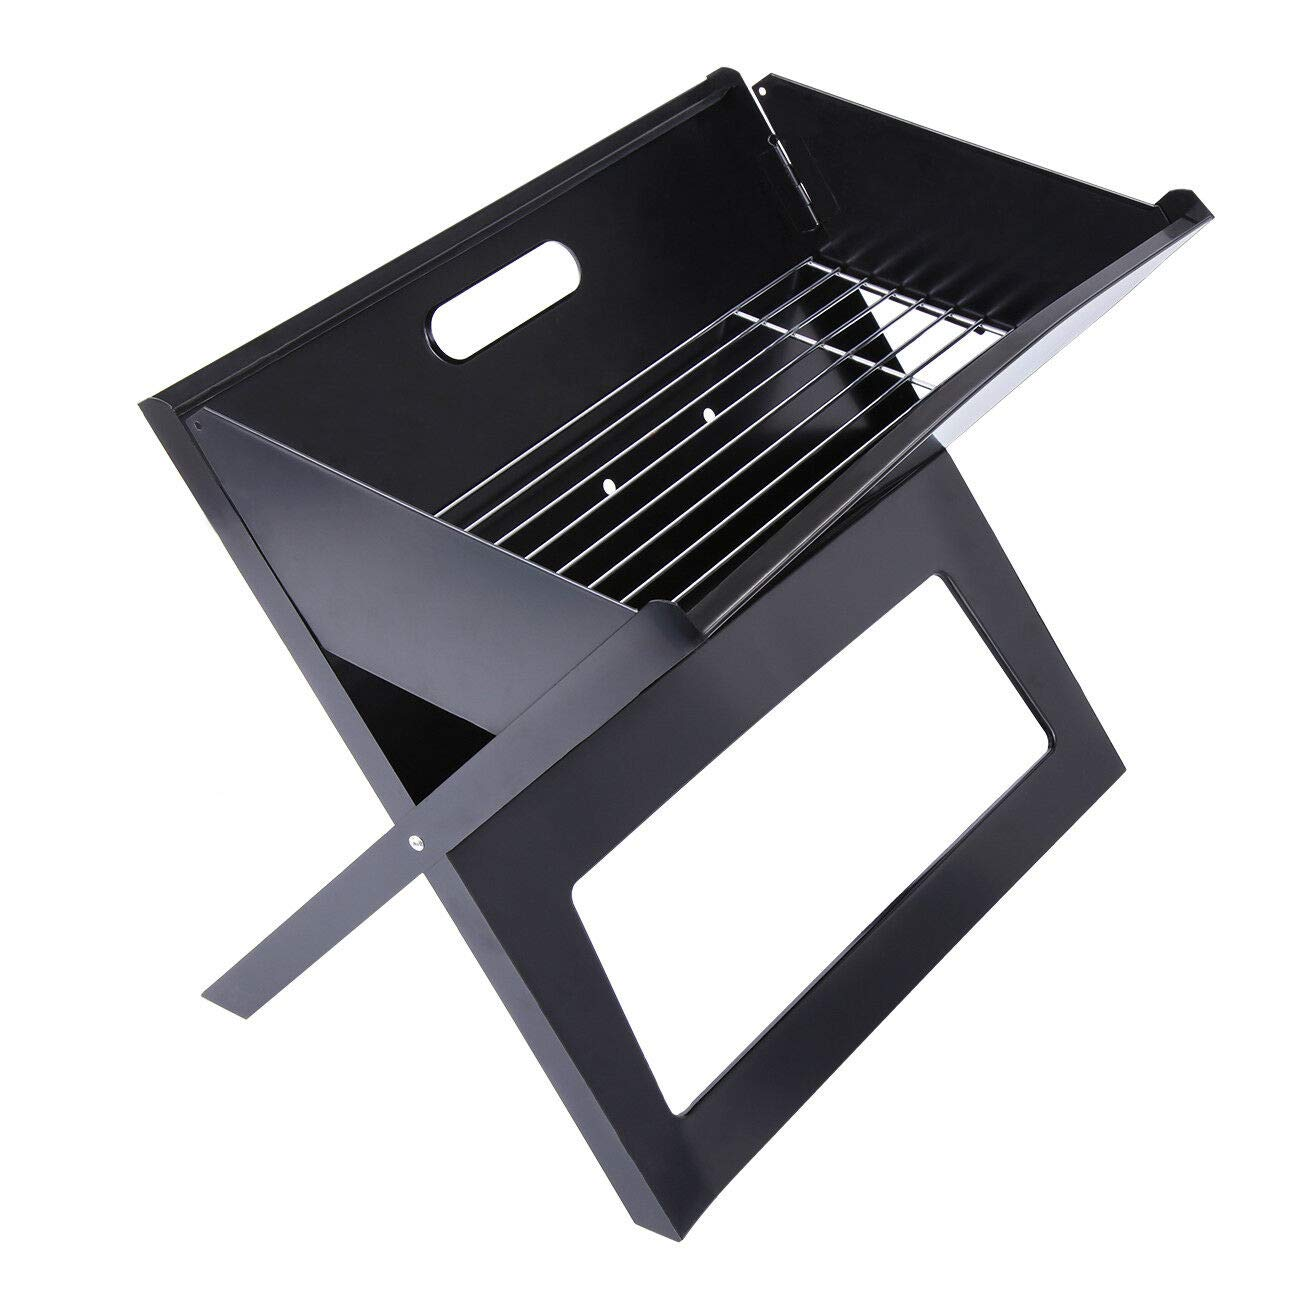 Portable Compact Barbecue BBQ Grill Charcoal Stand Bars Smoker Outdoor Camping Cooker